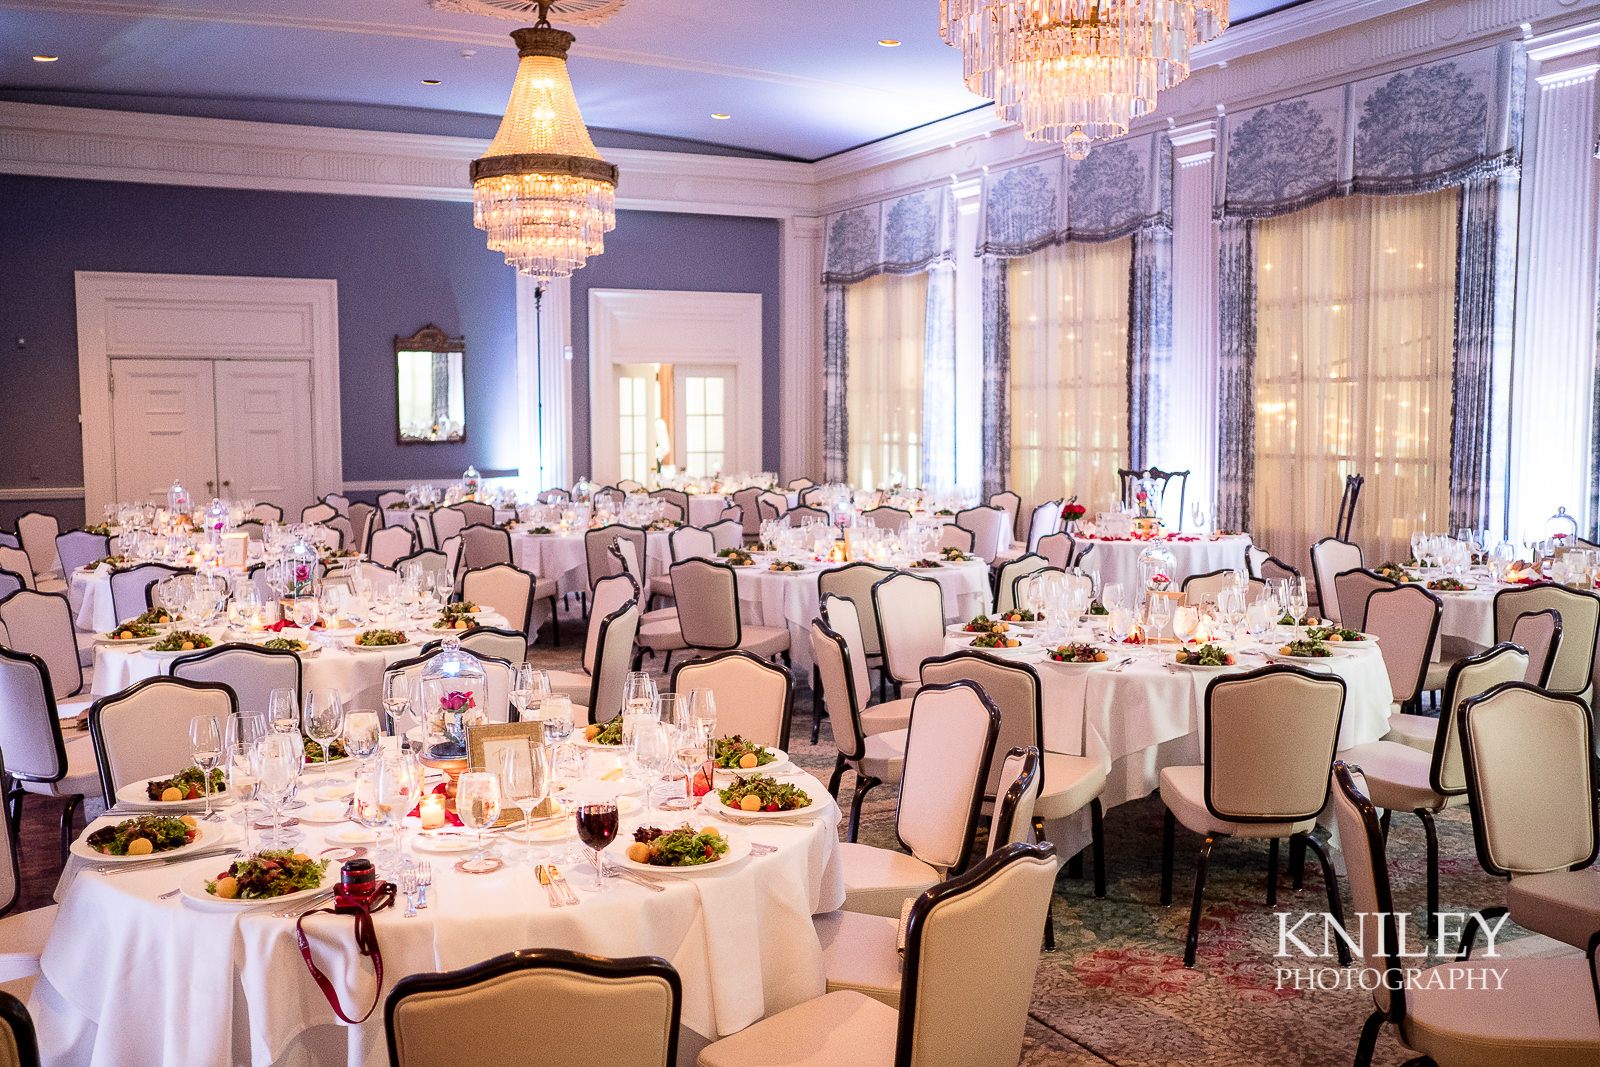 107 - Rochester NY wedding pictures - Genesee Valley Club - Ceremony and Reception - XT2B7034.jpg